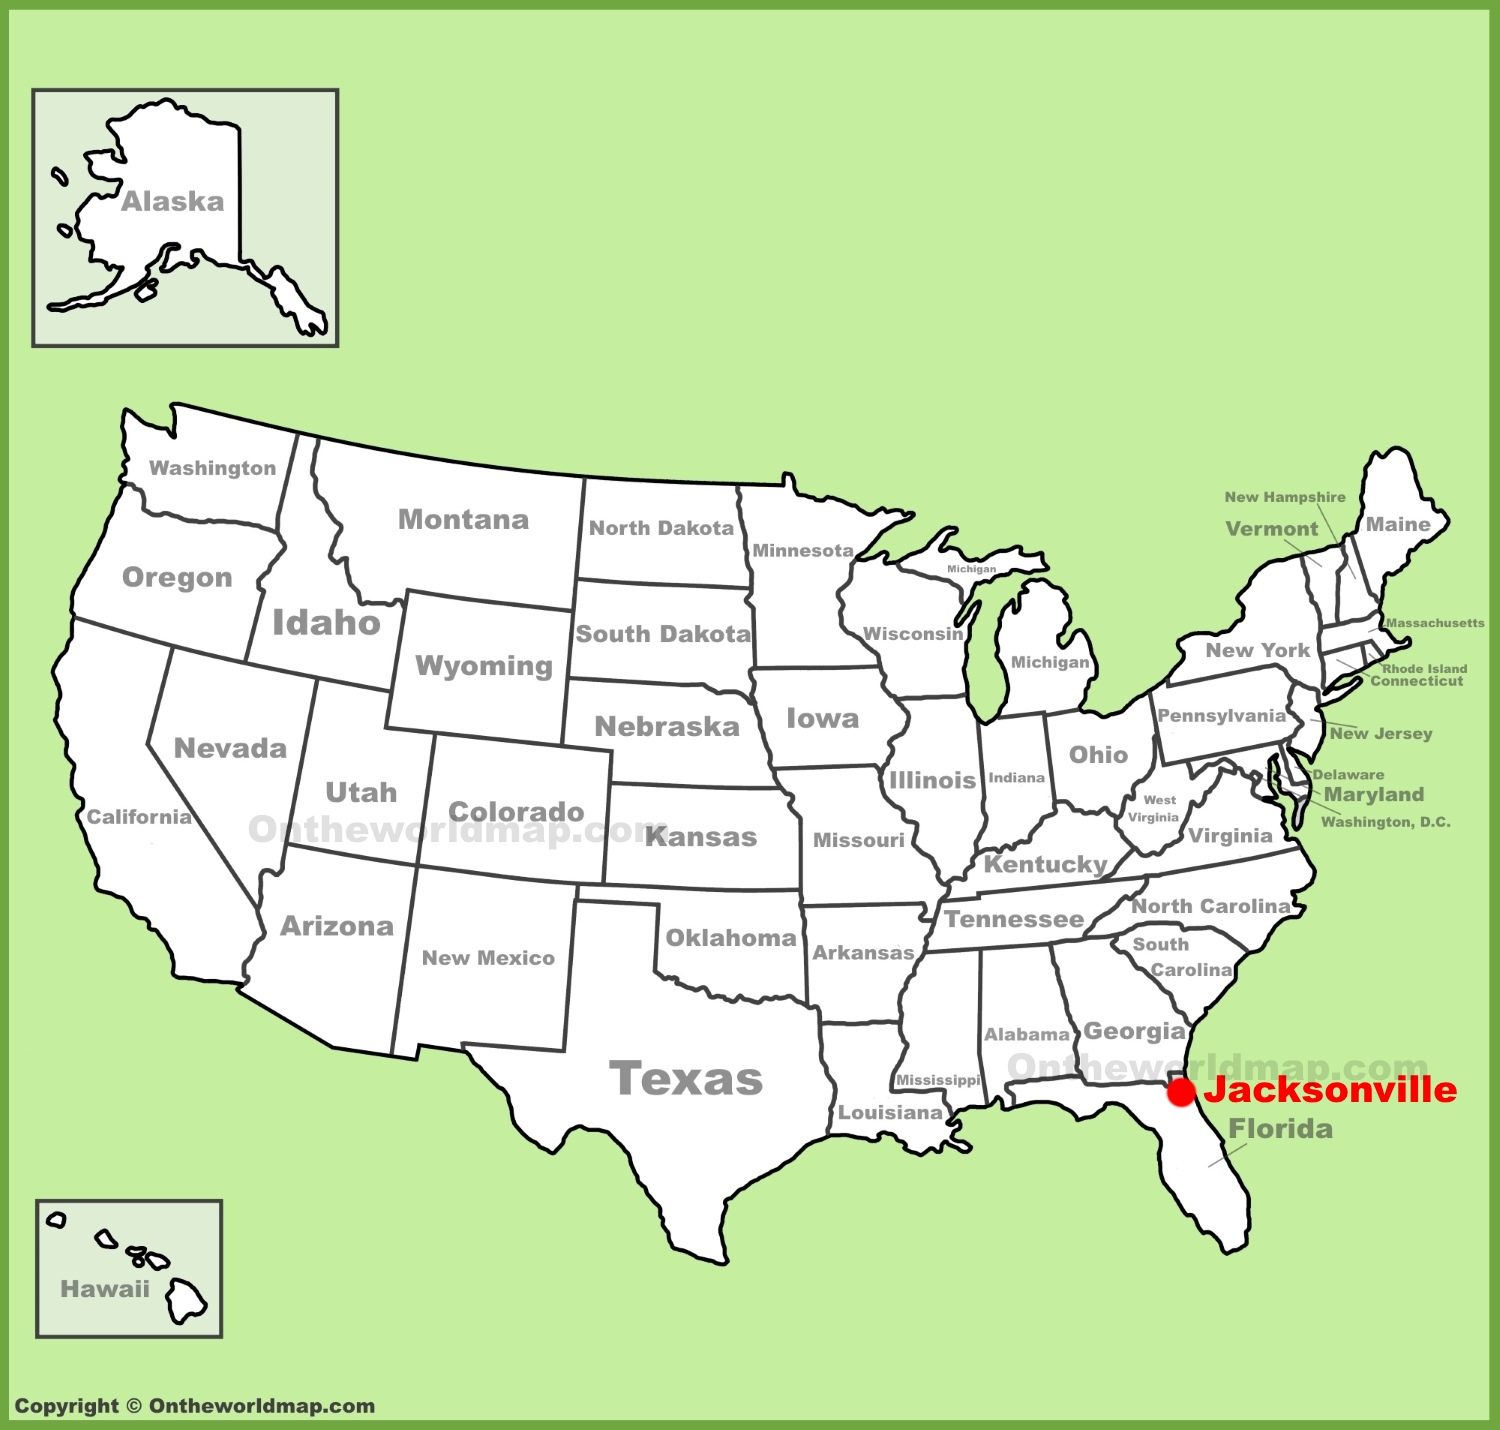 Jacksonville location on the US Map